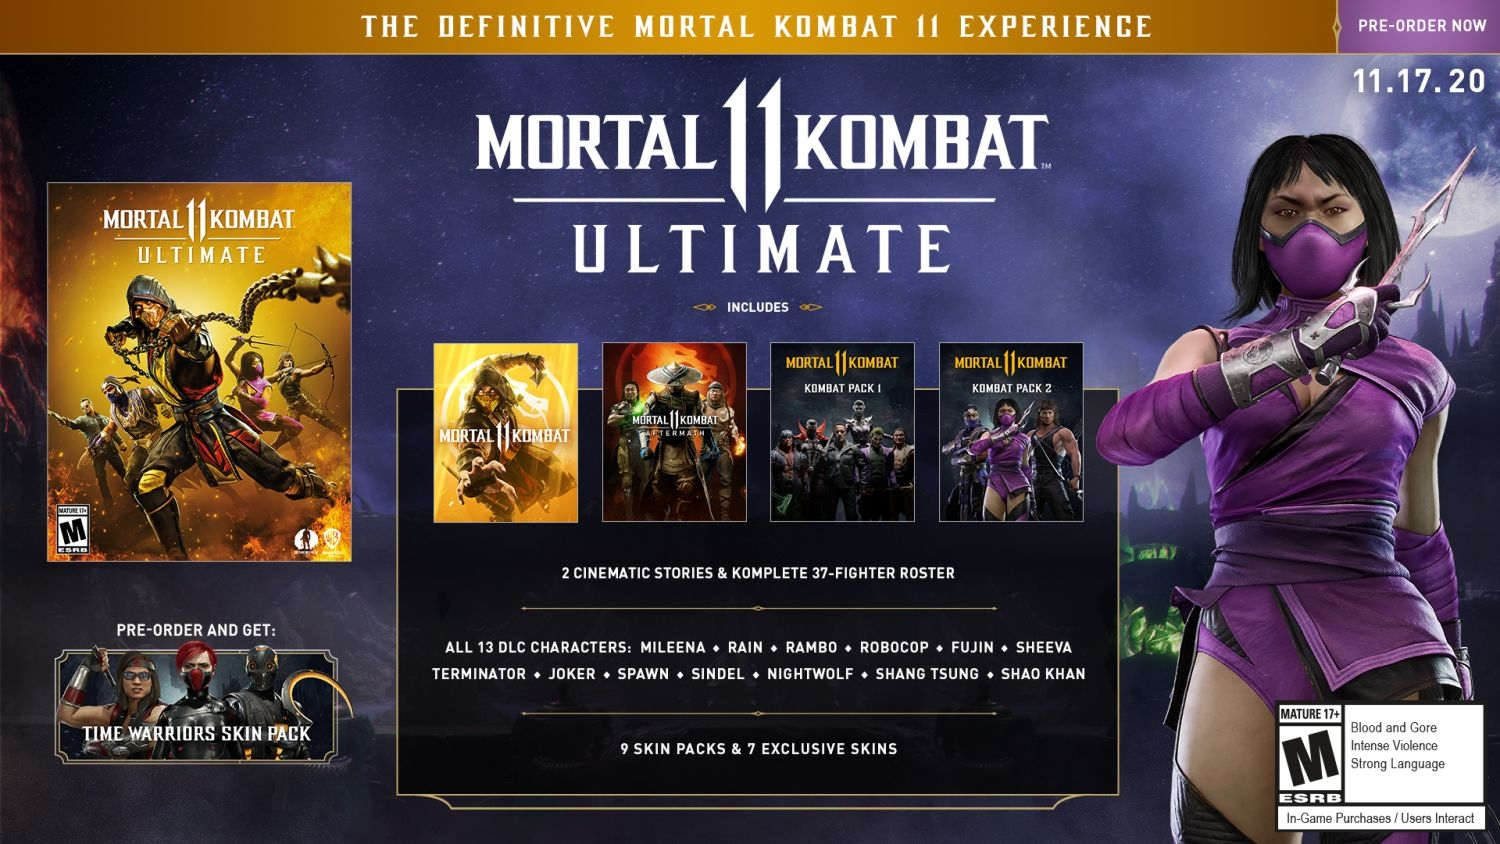 MORTAL KOMBAT 11 ULTIMATE LIMITED EDITION (PS4)